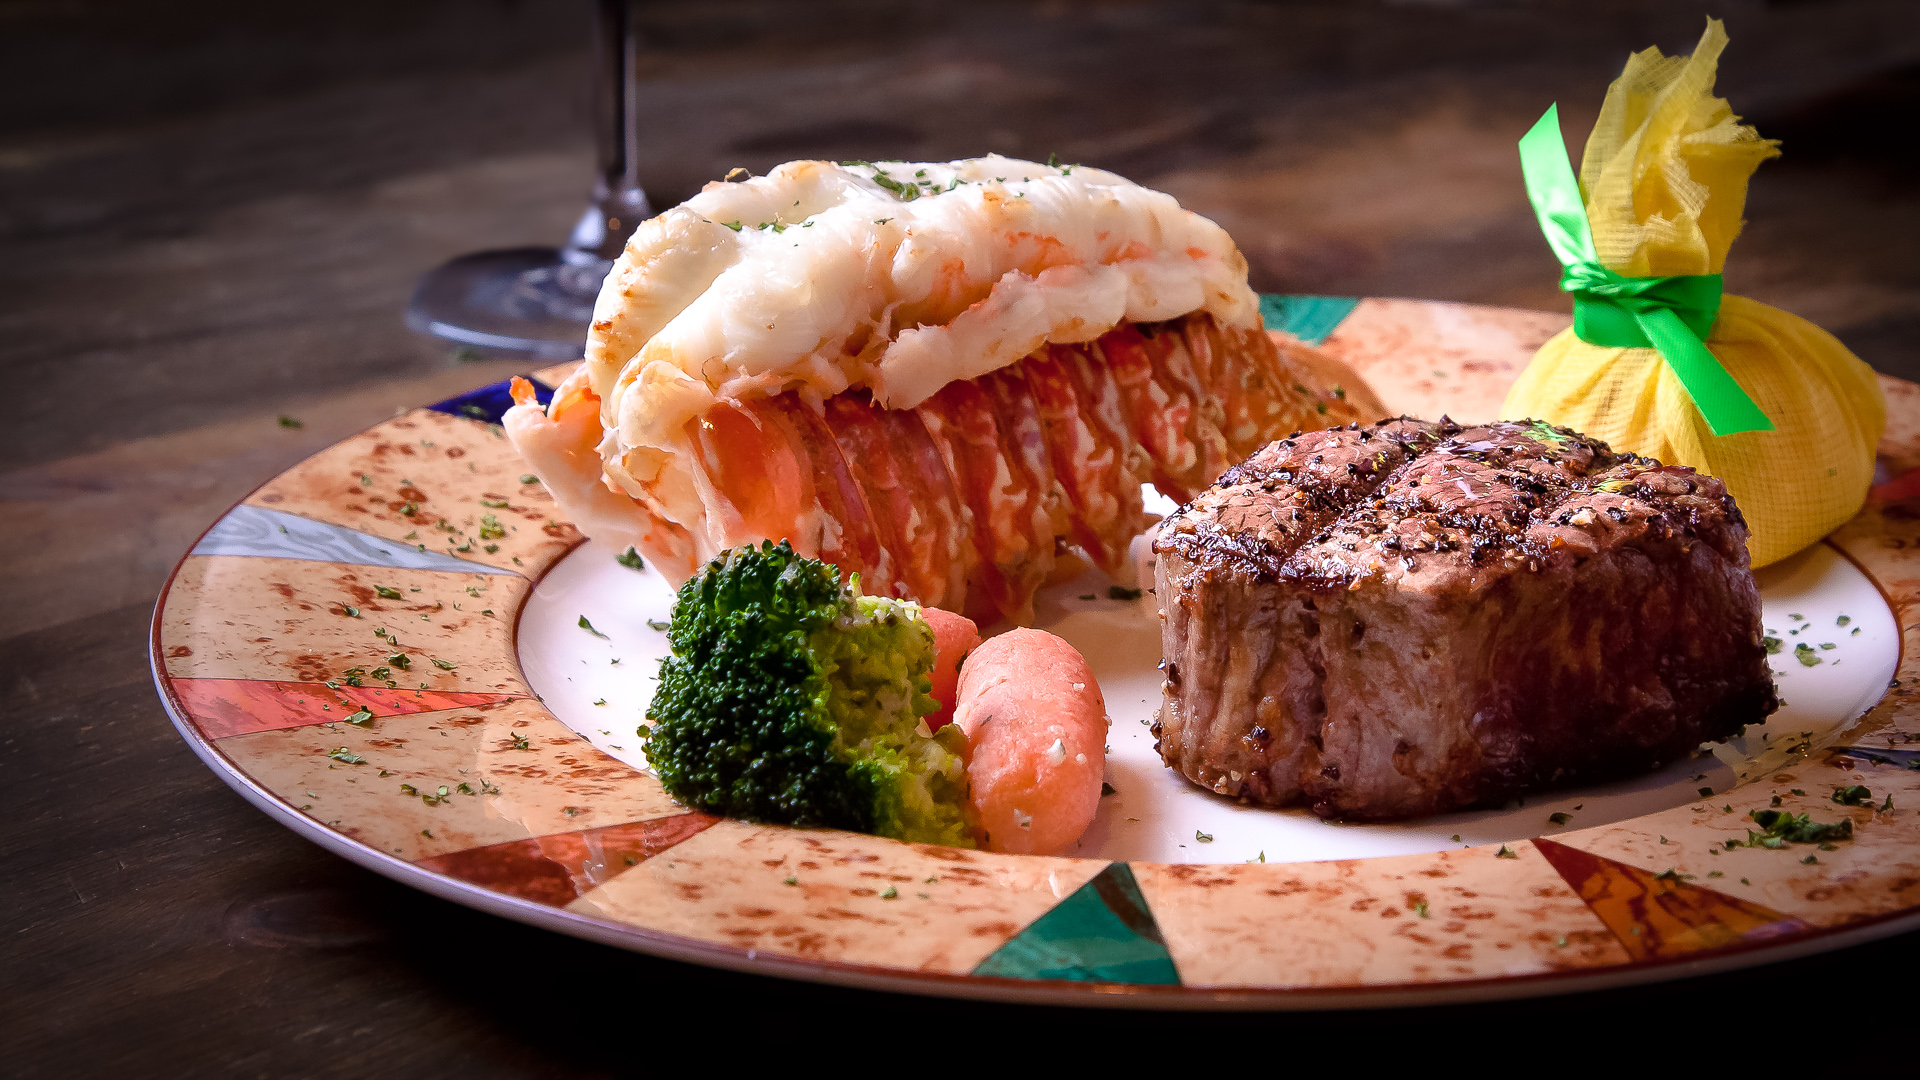 KYOTO Japanese Steak House amp Sushi Bar is a great place to enjoy lunch or dinner We offer delicious steak chicken seafood lobster dishes and sushi bar